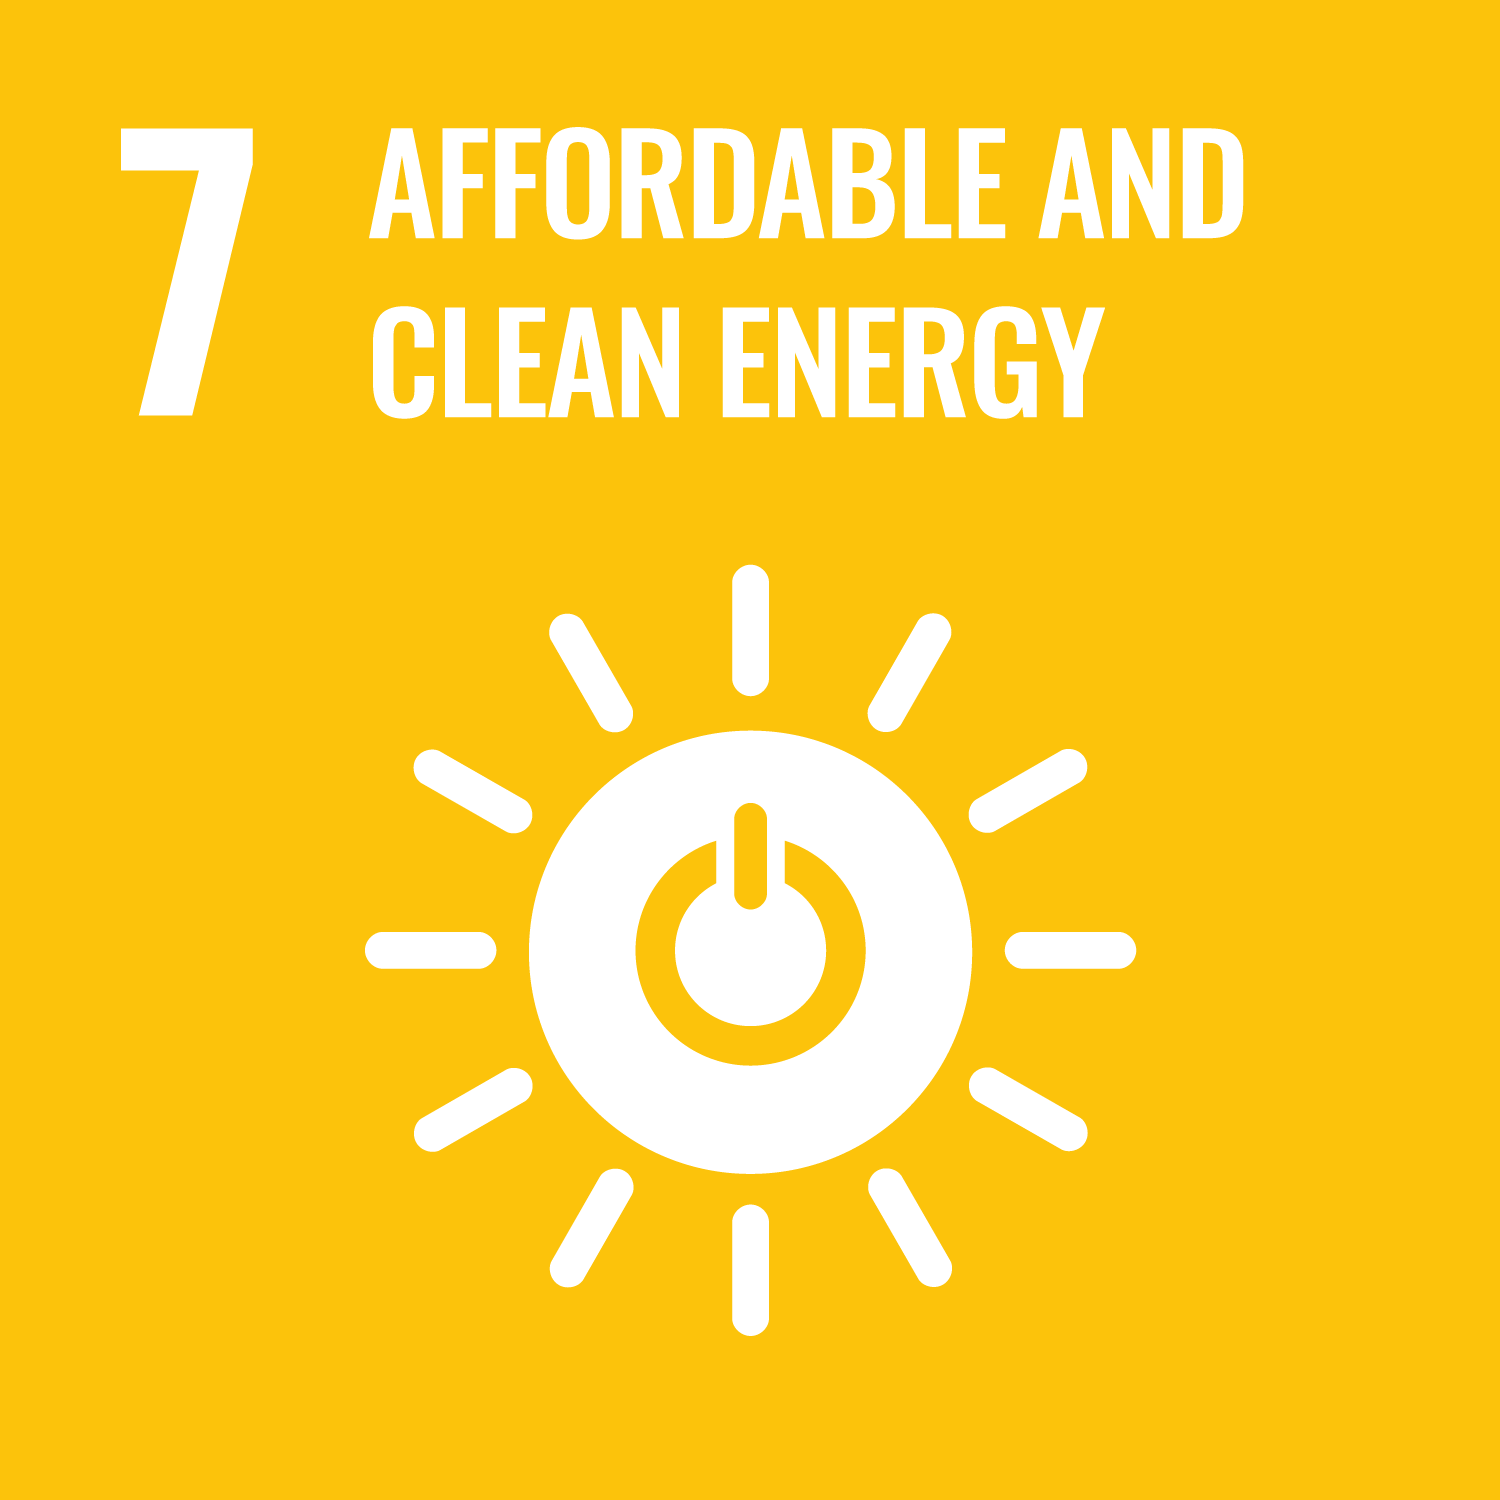 Goal 07 Affordable and Clean Energy